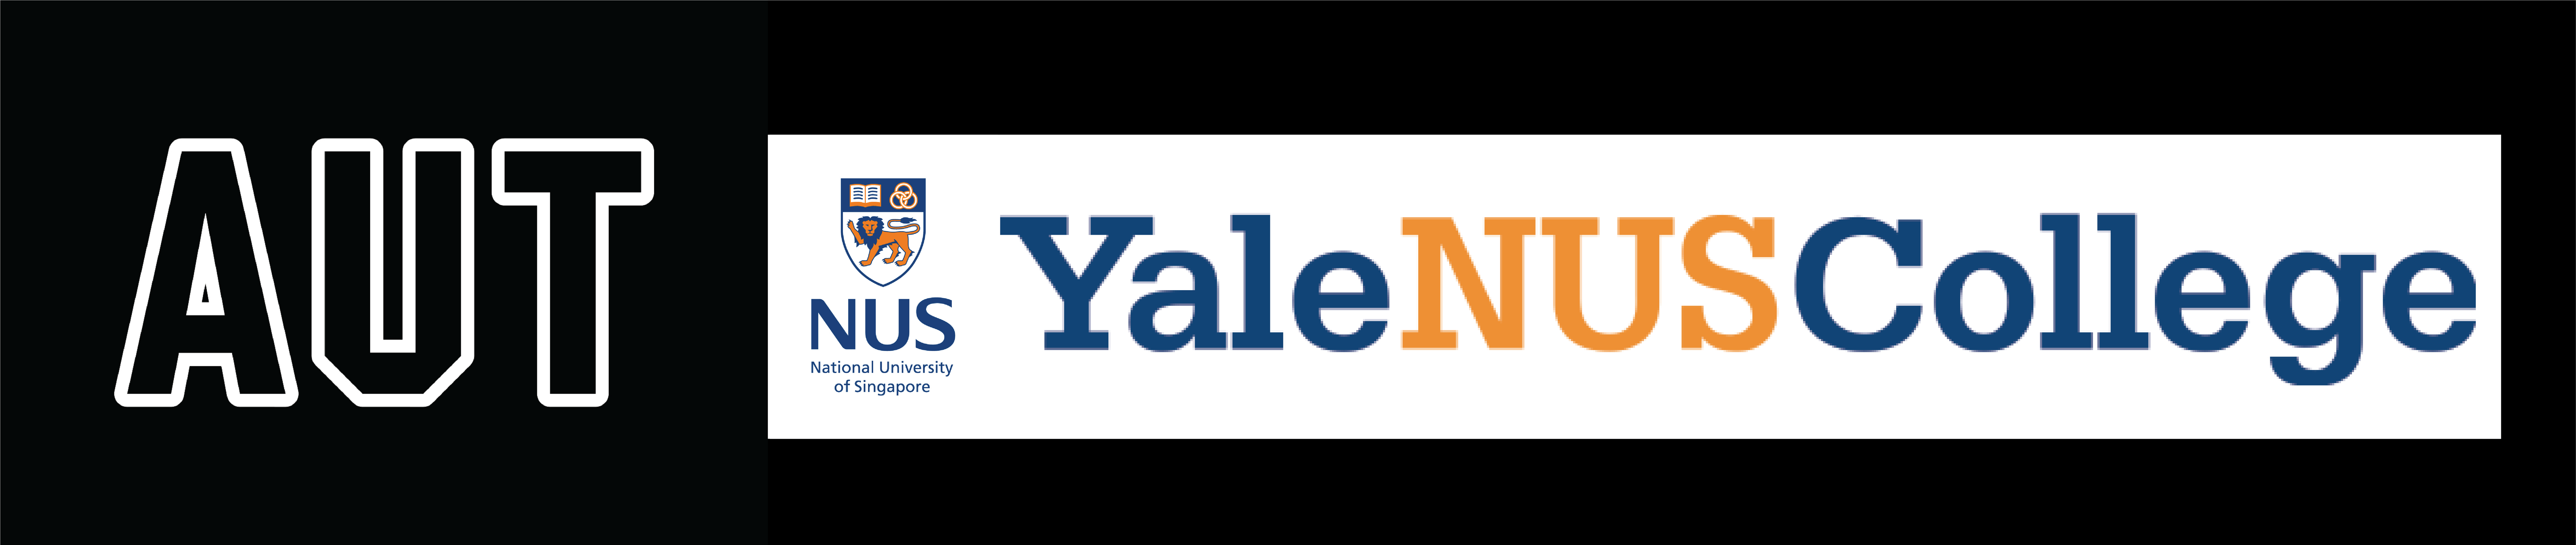 Auckland University of Technology, Yale-NUS College